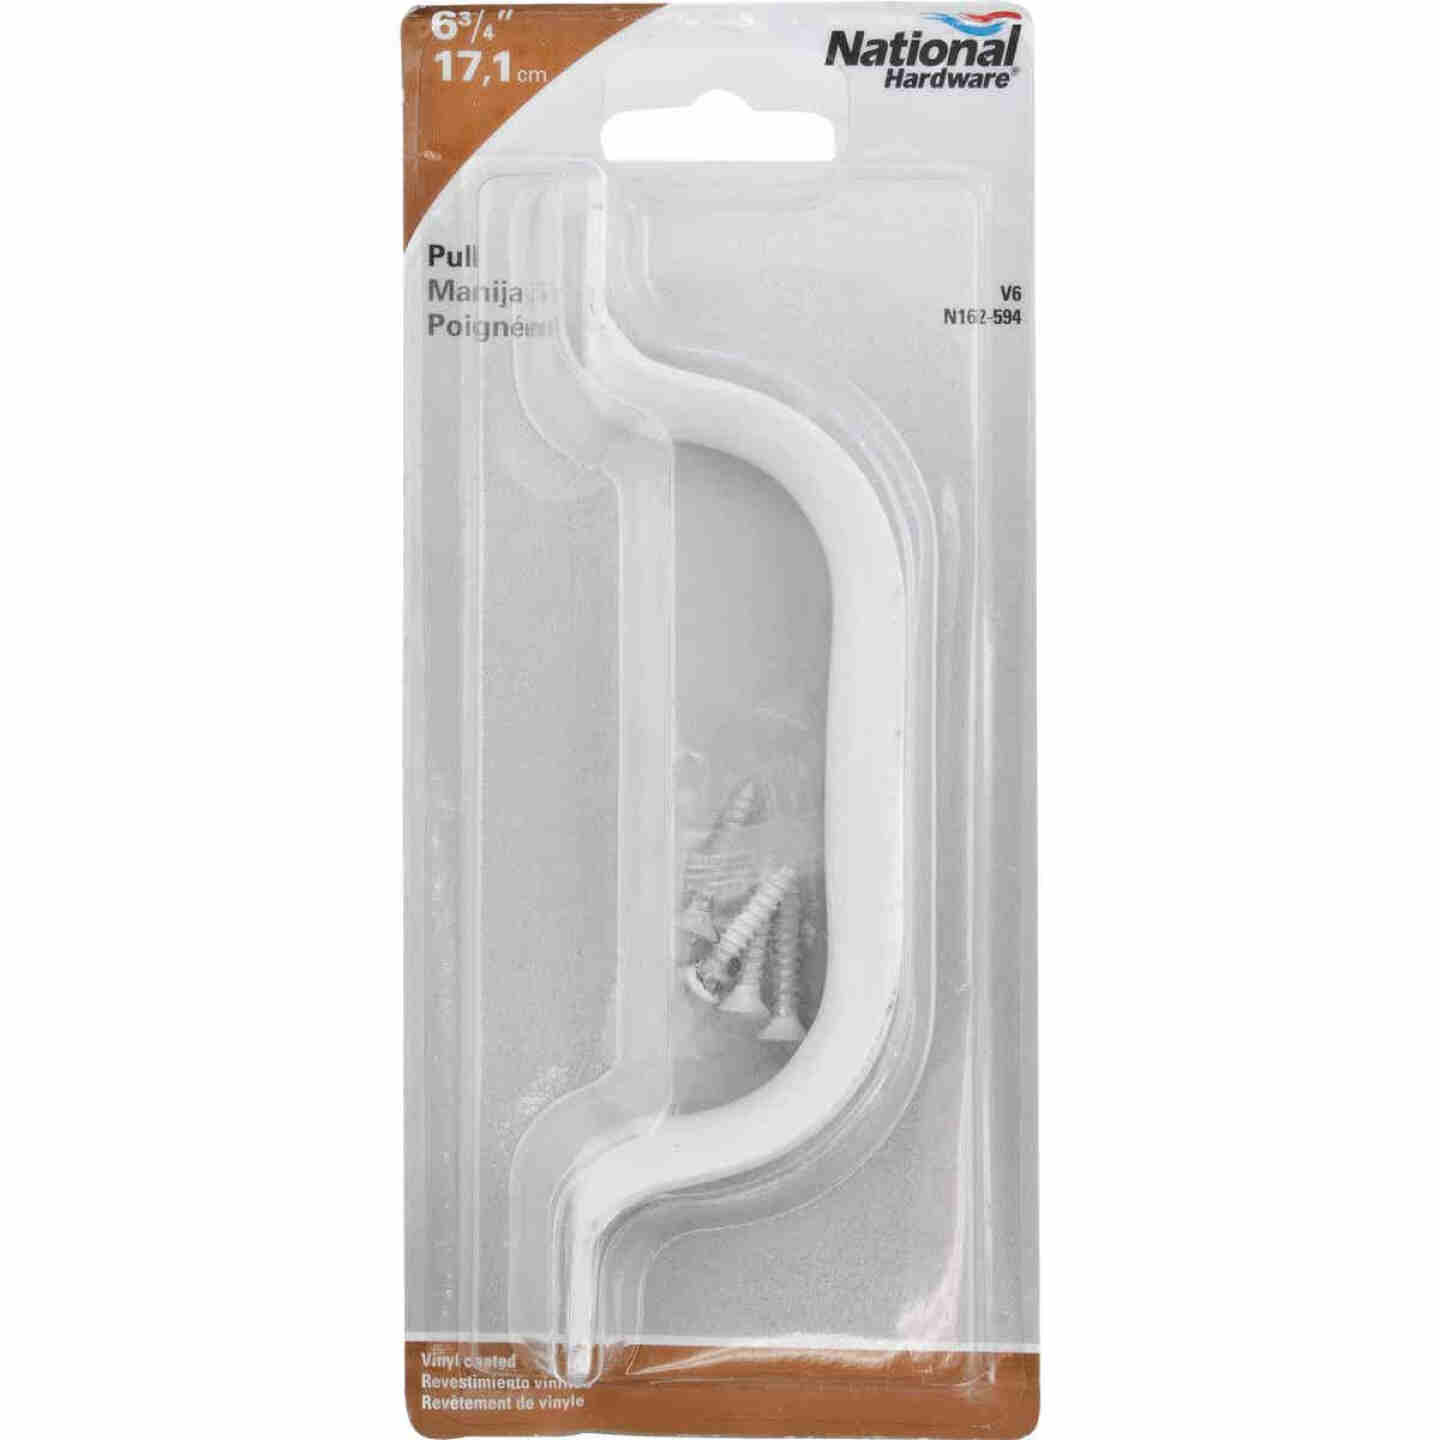 National 6-3/4 In. White Vinyl Coated Zinc Door Pull Image 2